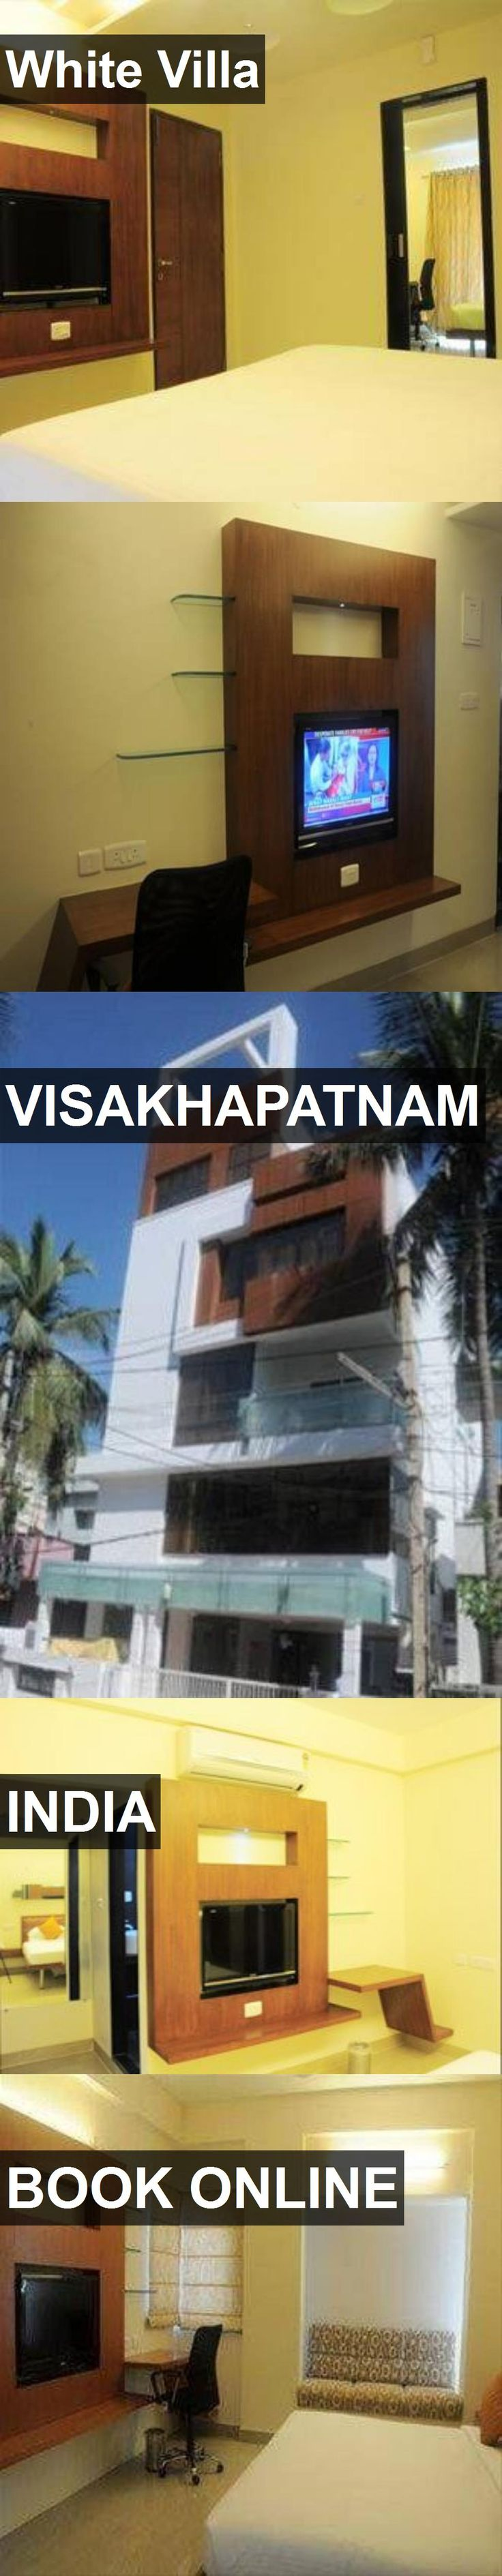 Hotel White Villa in Visakhapatnam, India. For more information, photos, reviews and best prices please follow the link. #India #Visakhapatnam #travel #vacation #hotel